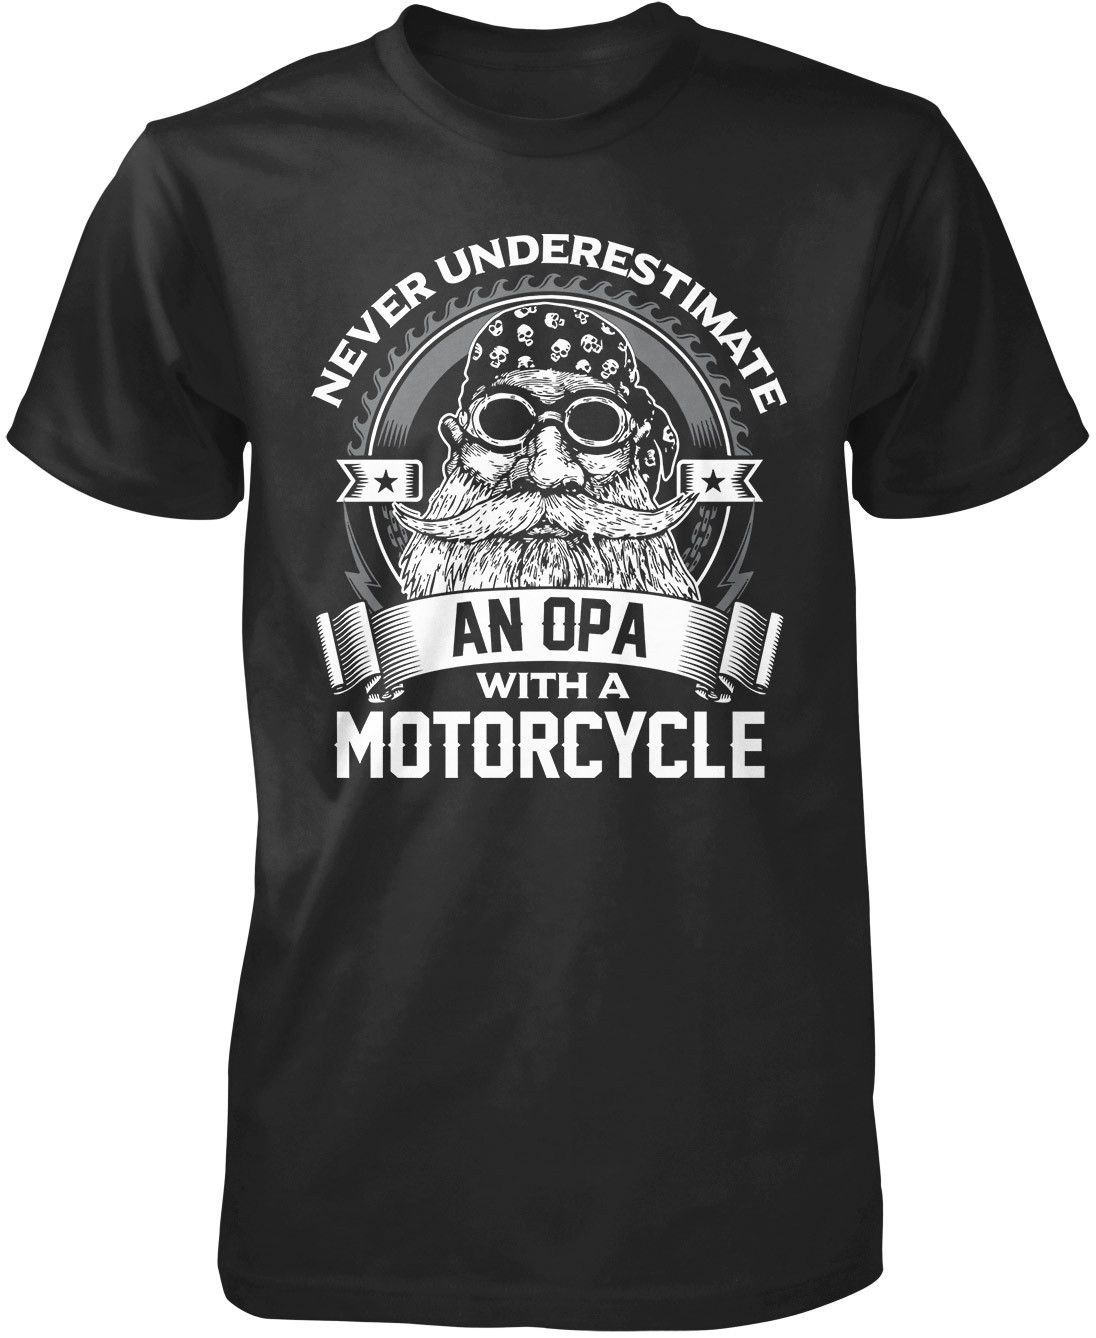 Never Underestimate an Opa with a Motorcycle